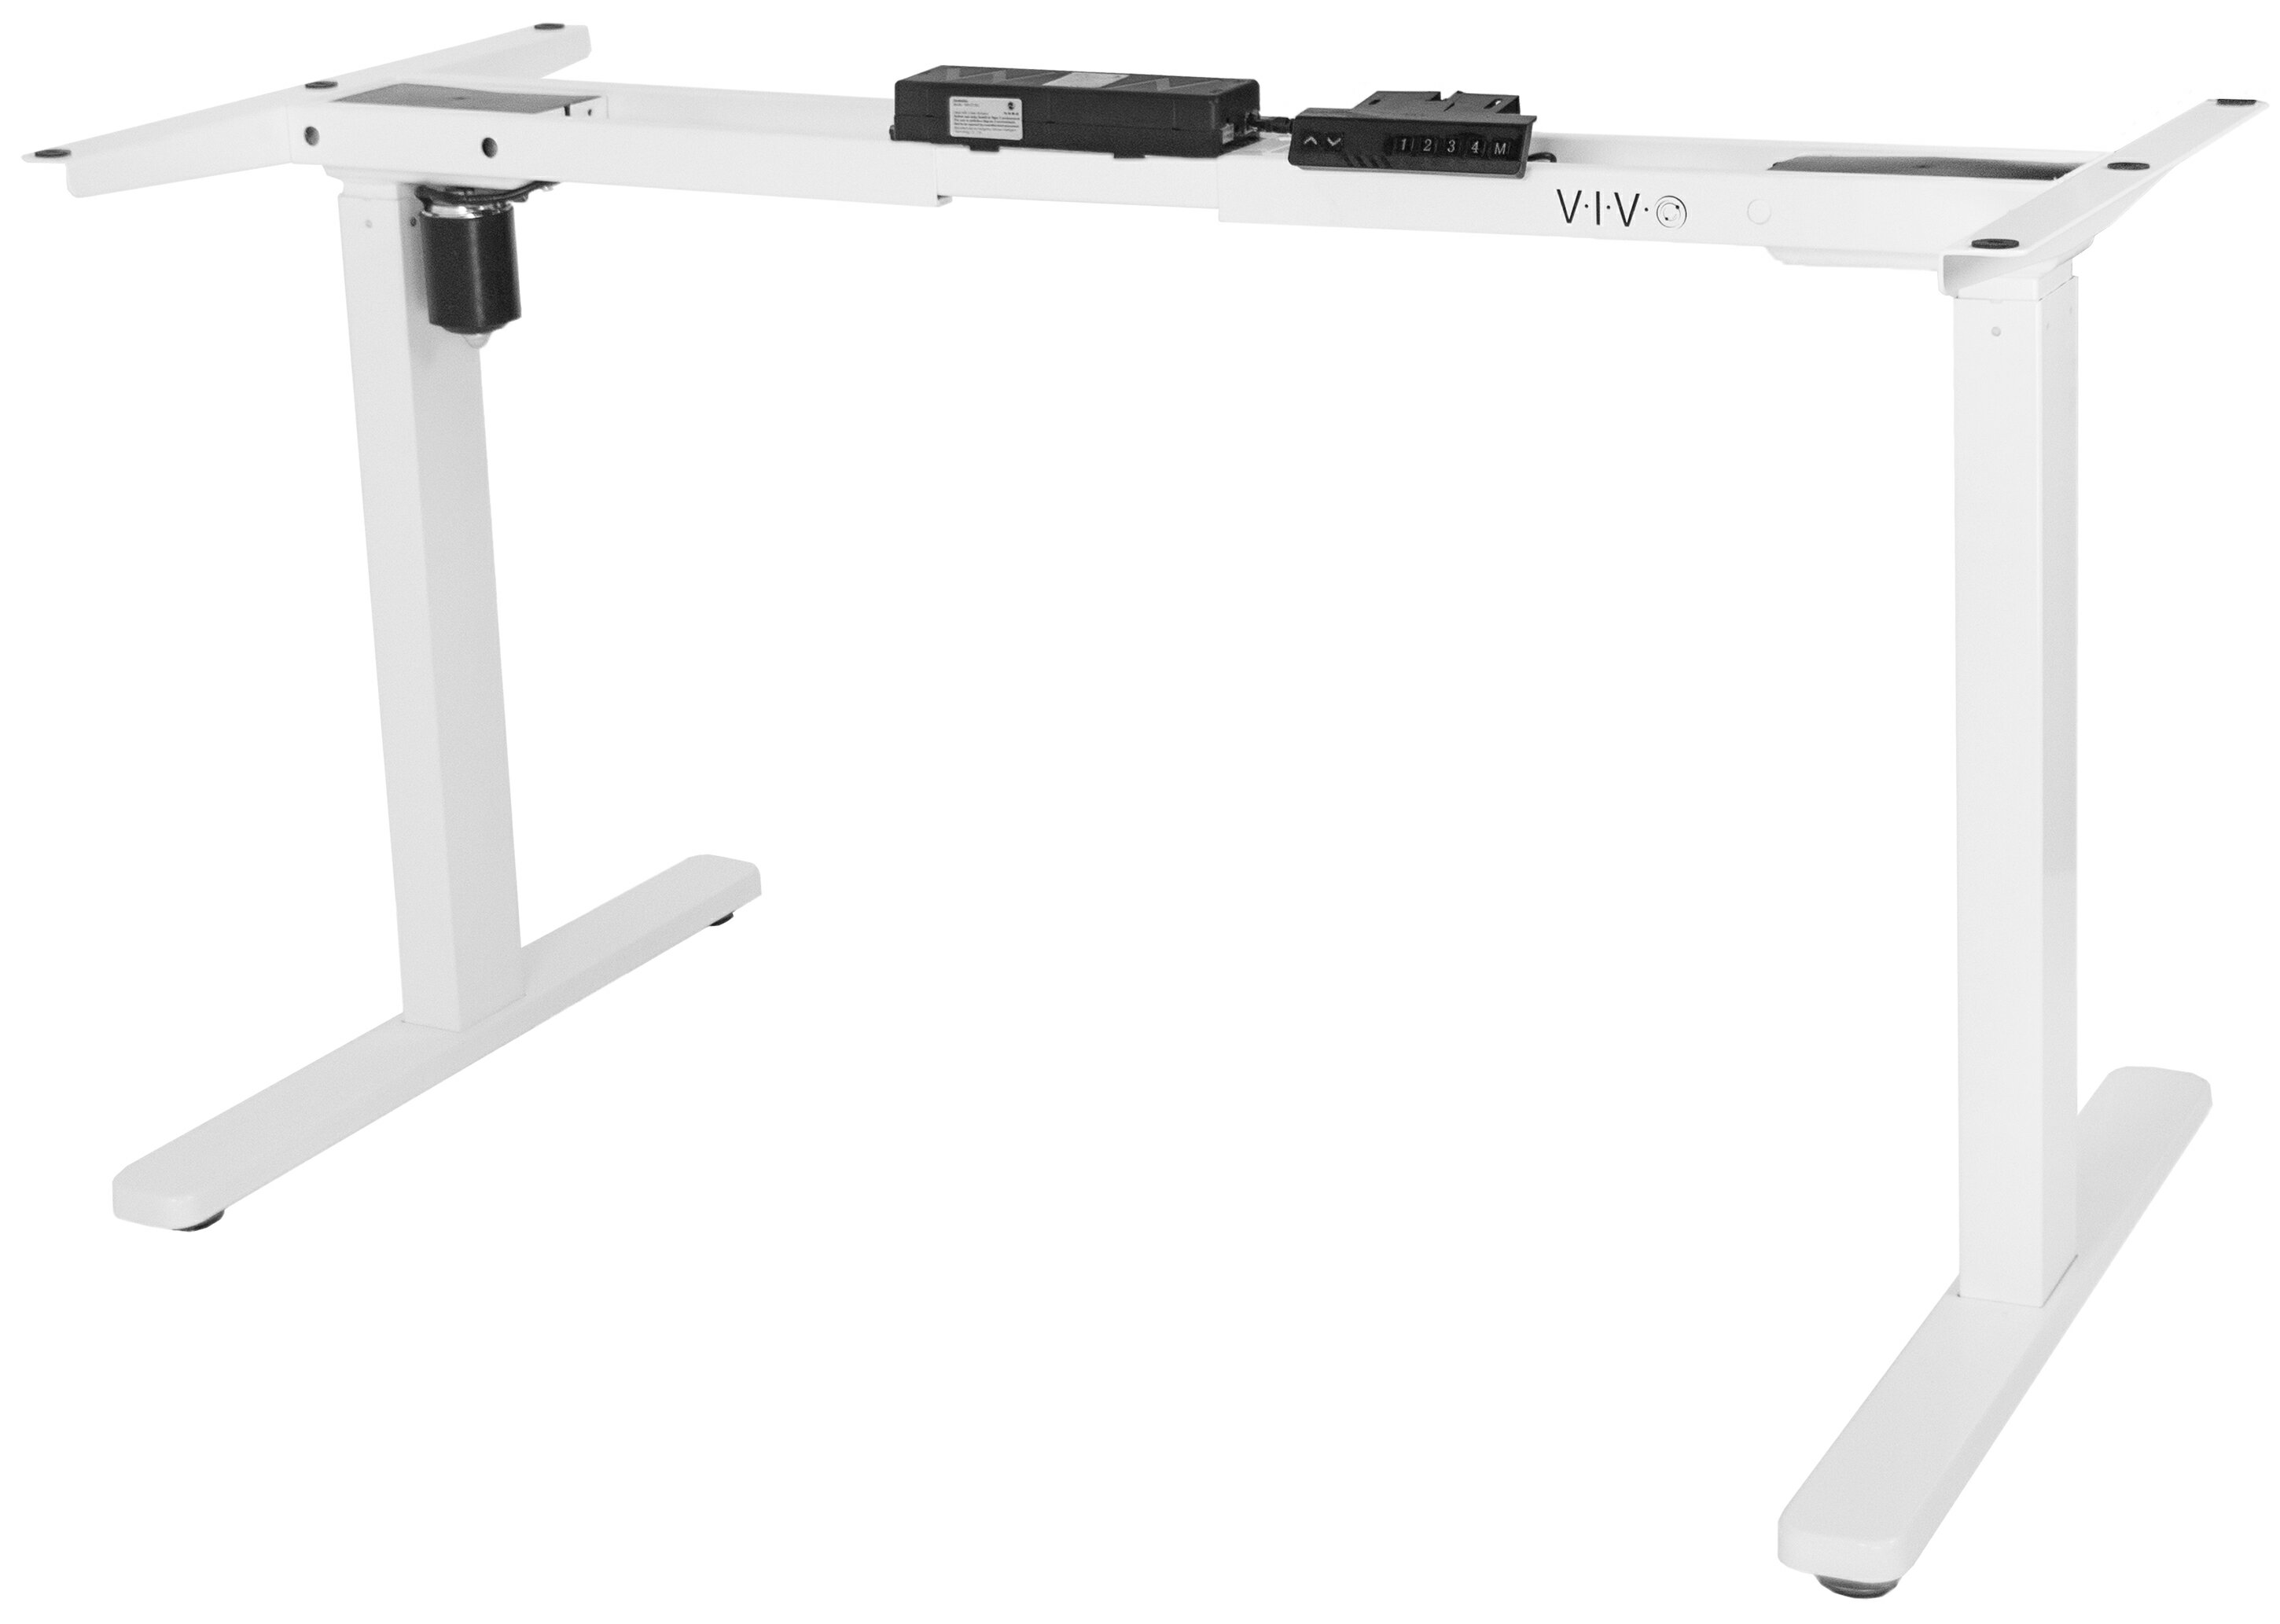 Vivo white electric stand up single motor height adjustable desk frame workstation base standing desk legs